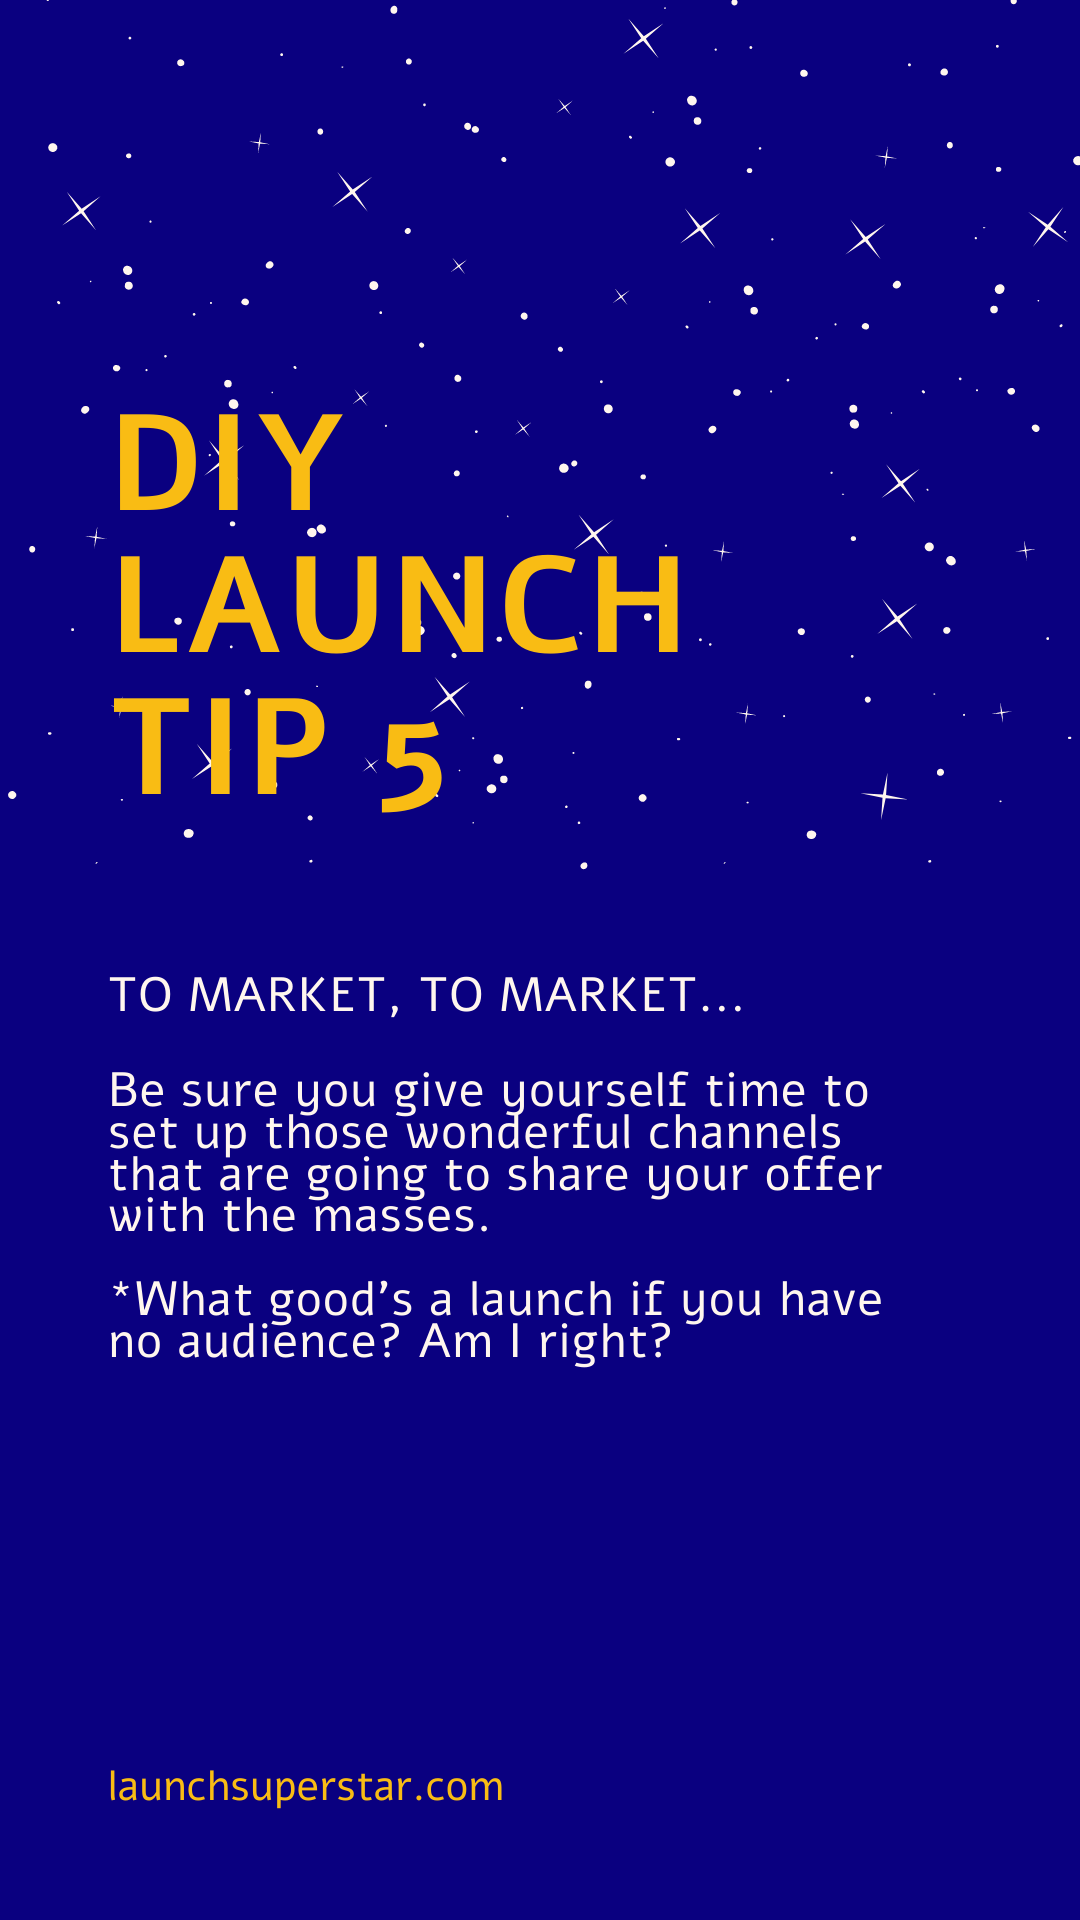 DIY Launch tip 5